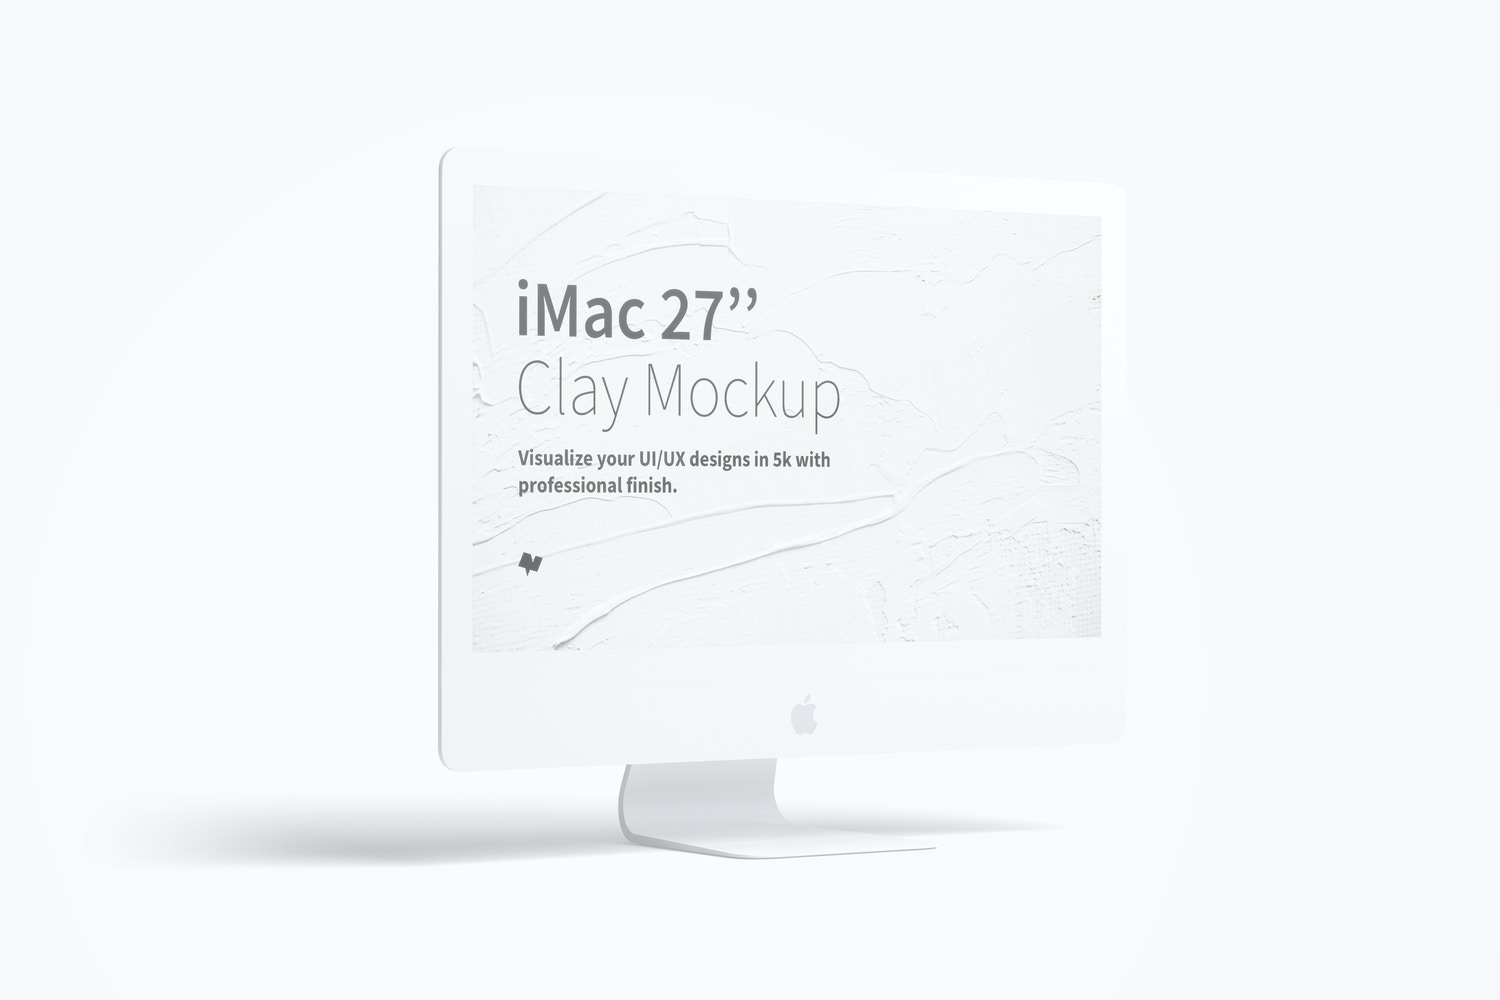 "Clay iMac 27"" Mockup, Left View by Original Mockups on Original Mockups"